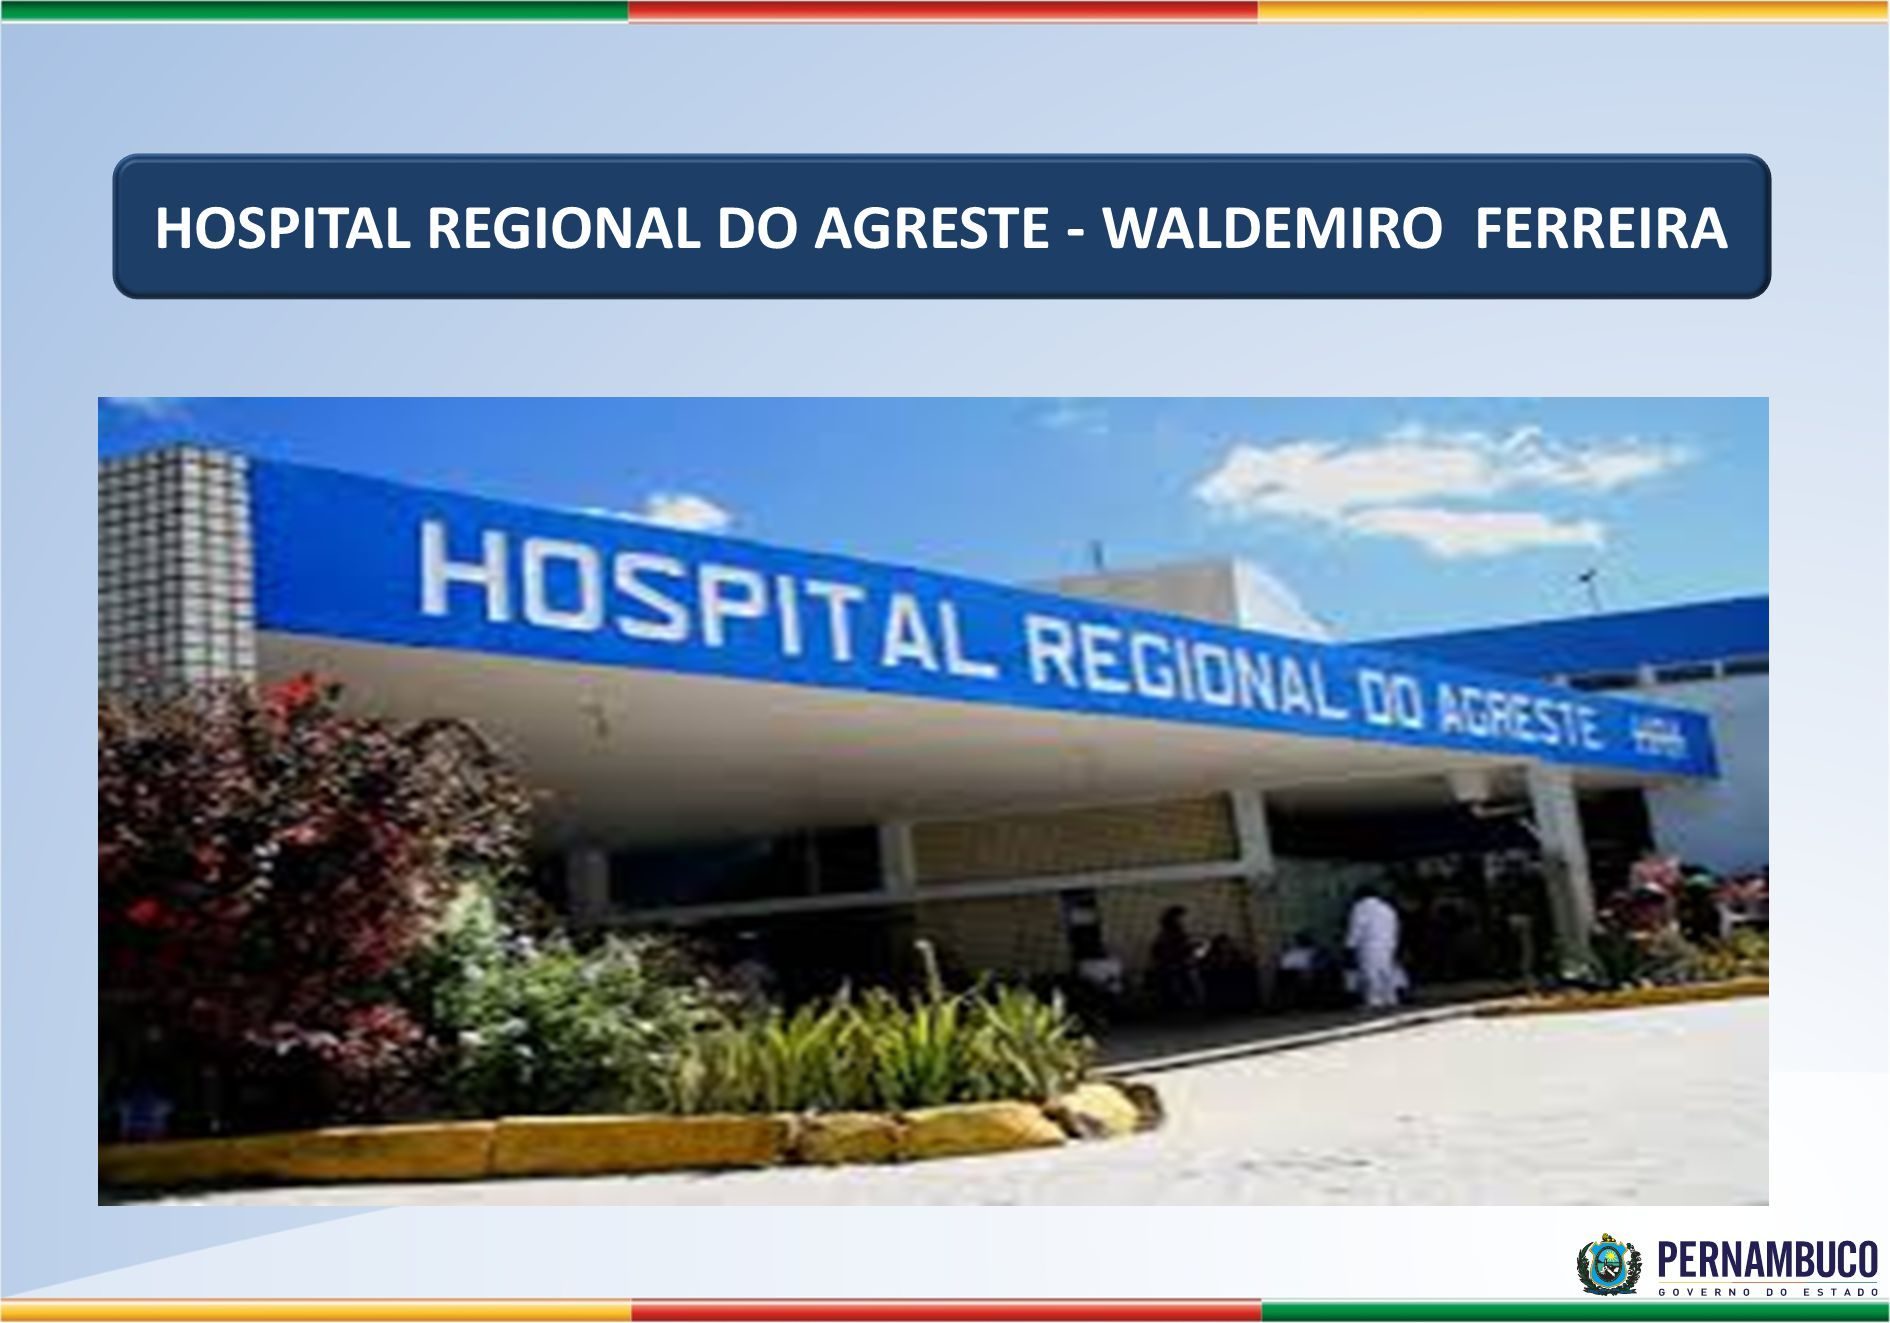 HOSPITAL REGIONAL DO AGRESTE - WALDEMIRO FERREIRA